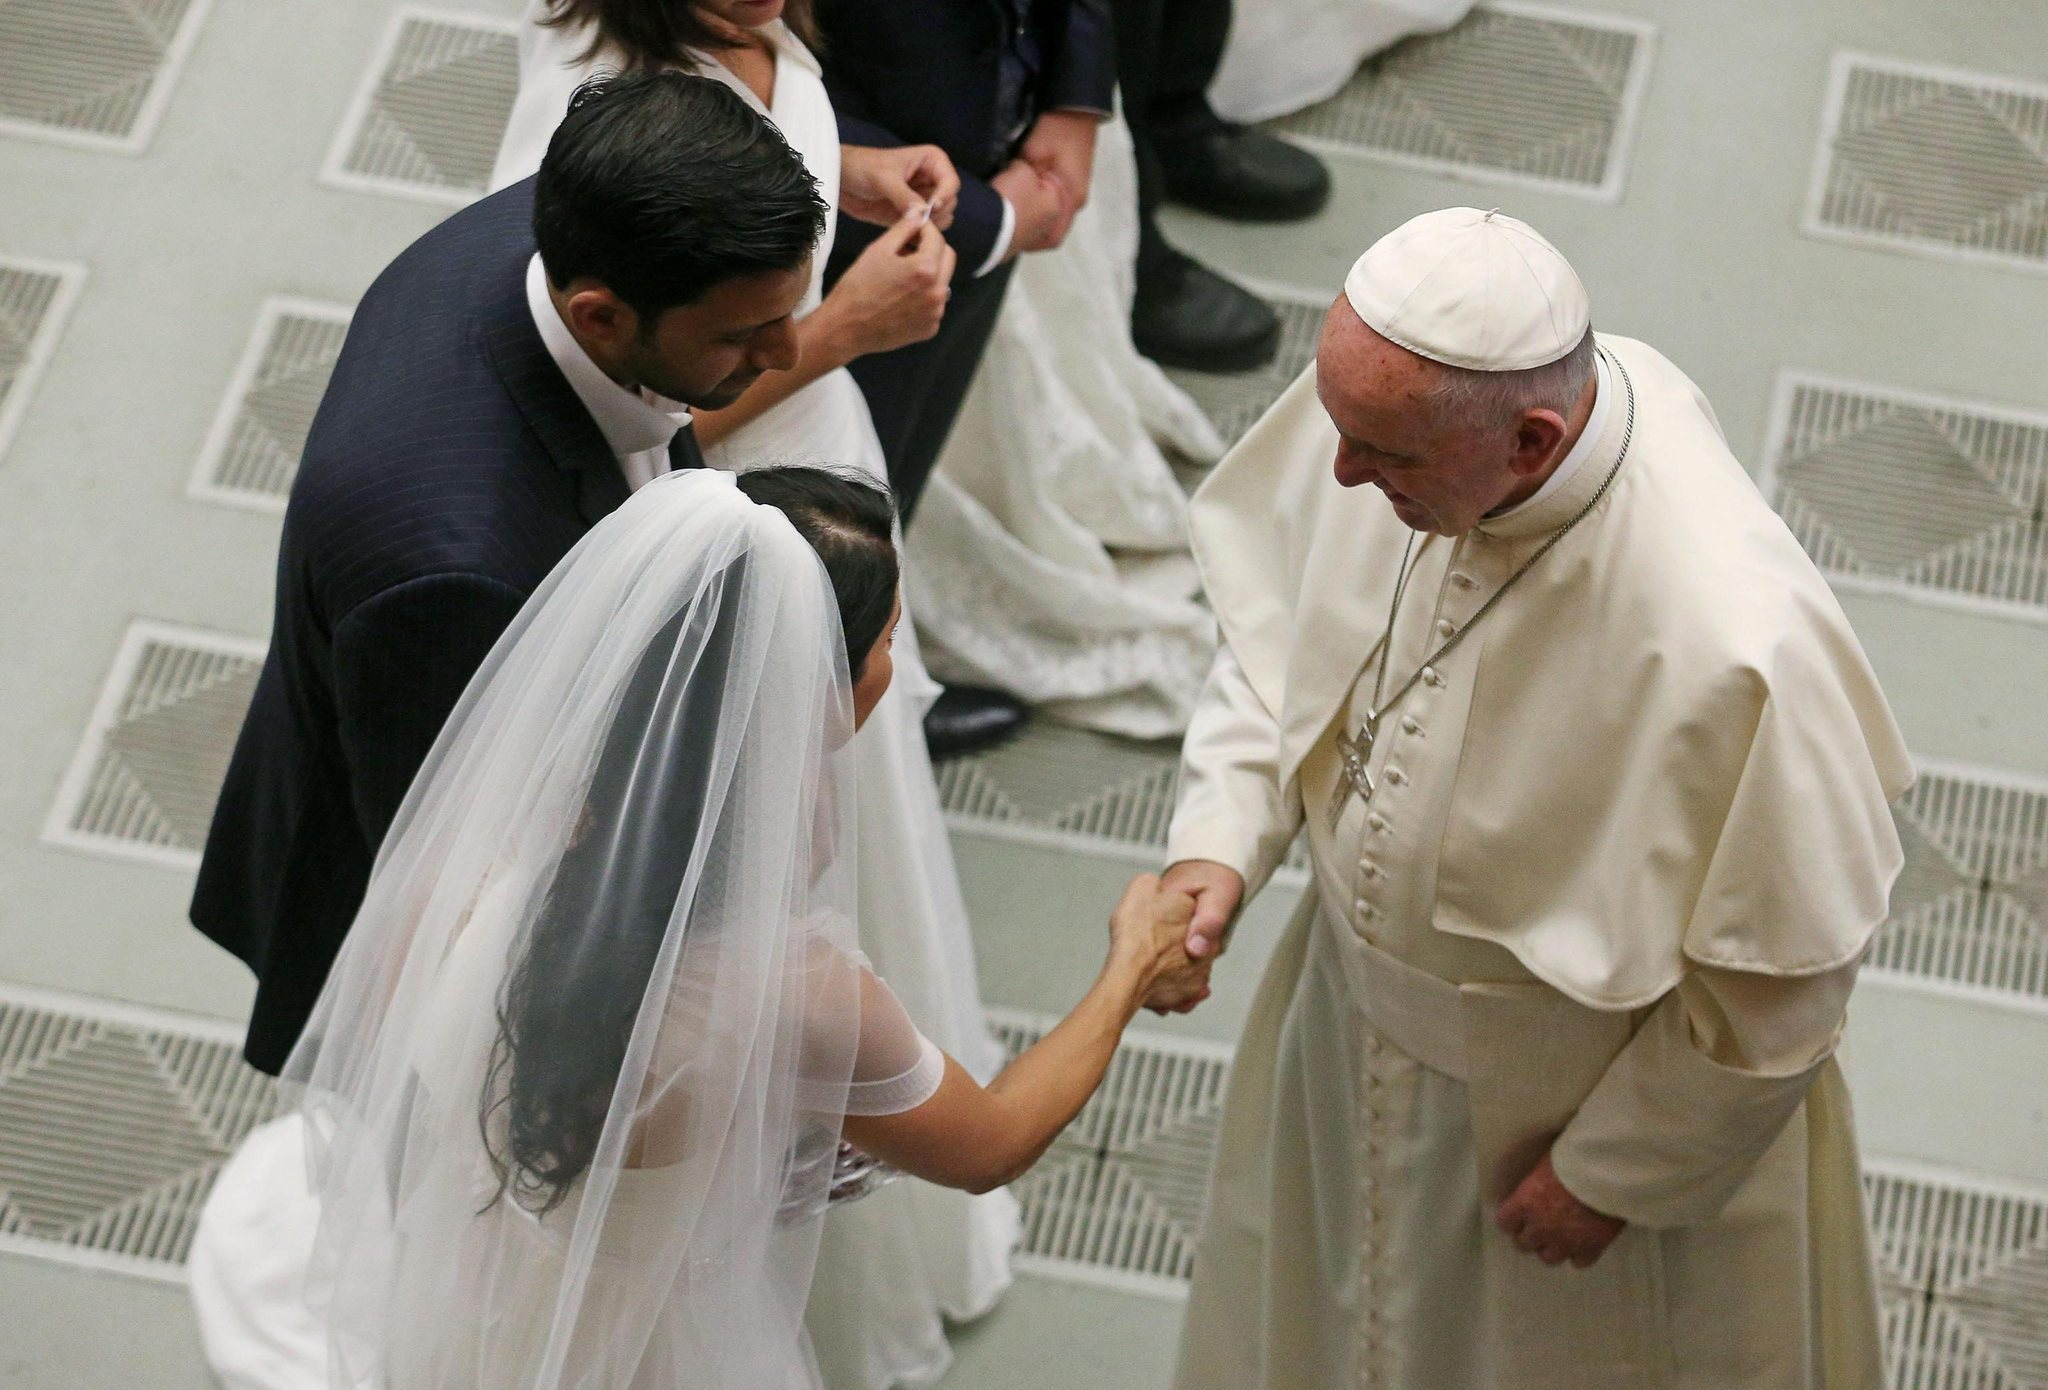 The annulment process is by